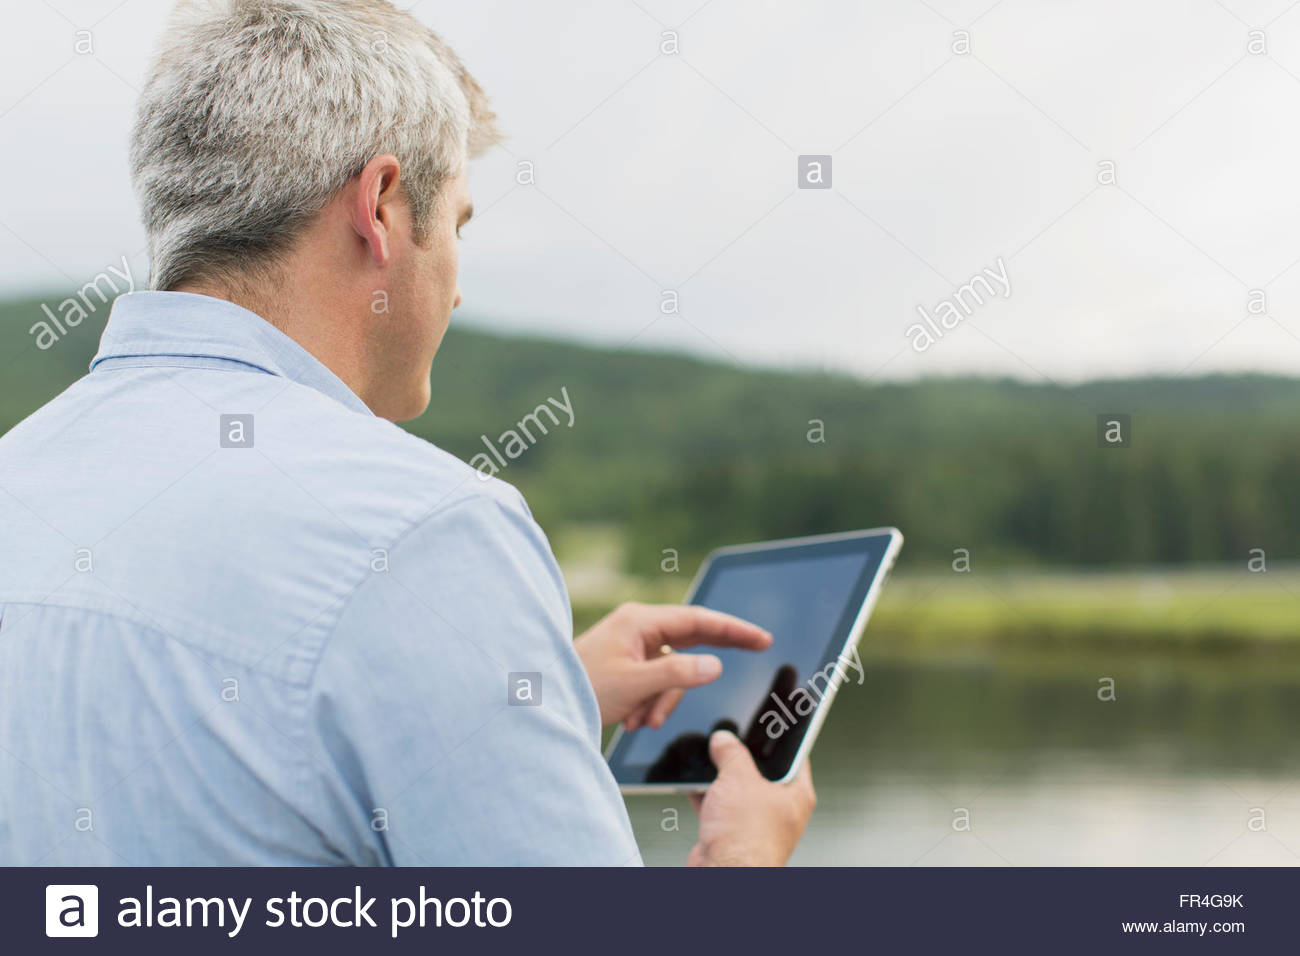 View from behind of middle-aged man using pc tablet. - Stock Image